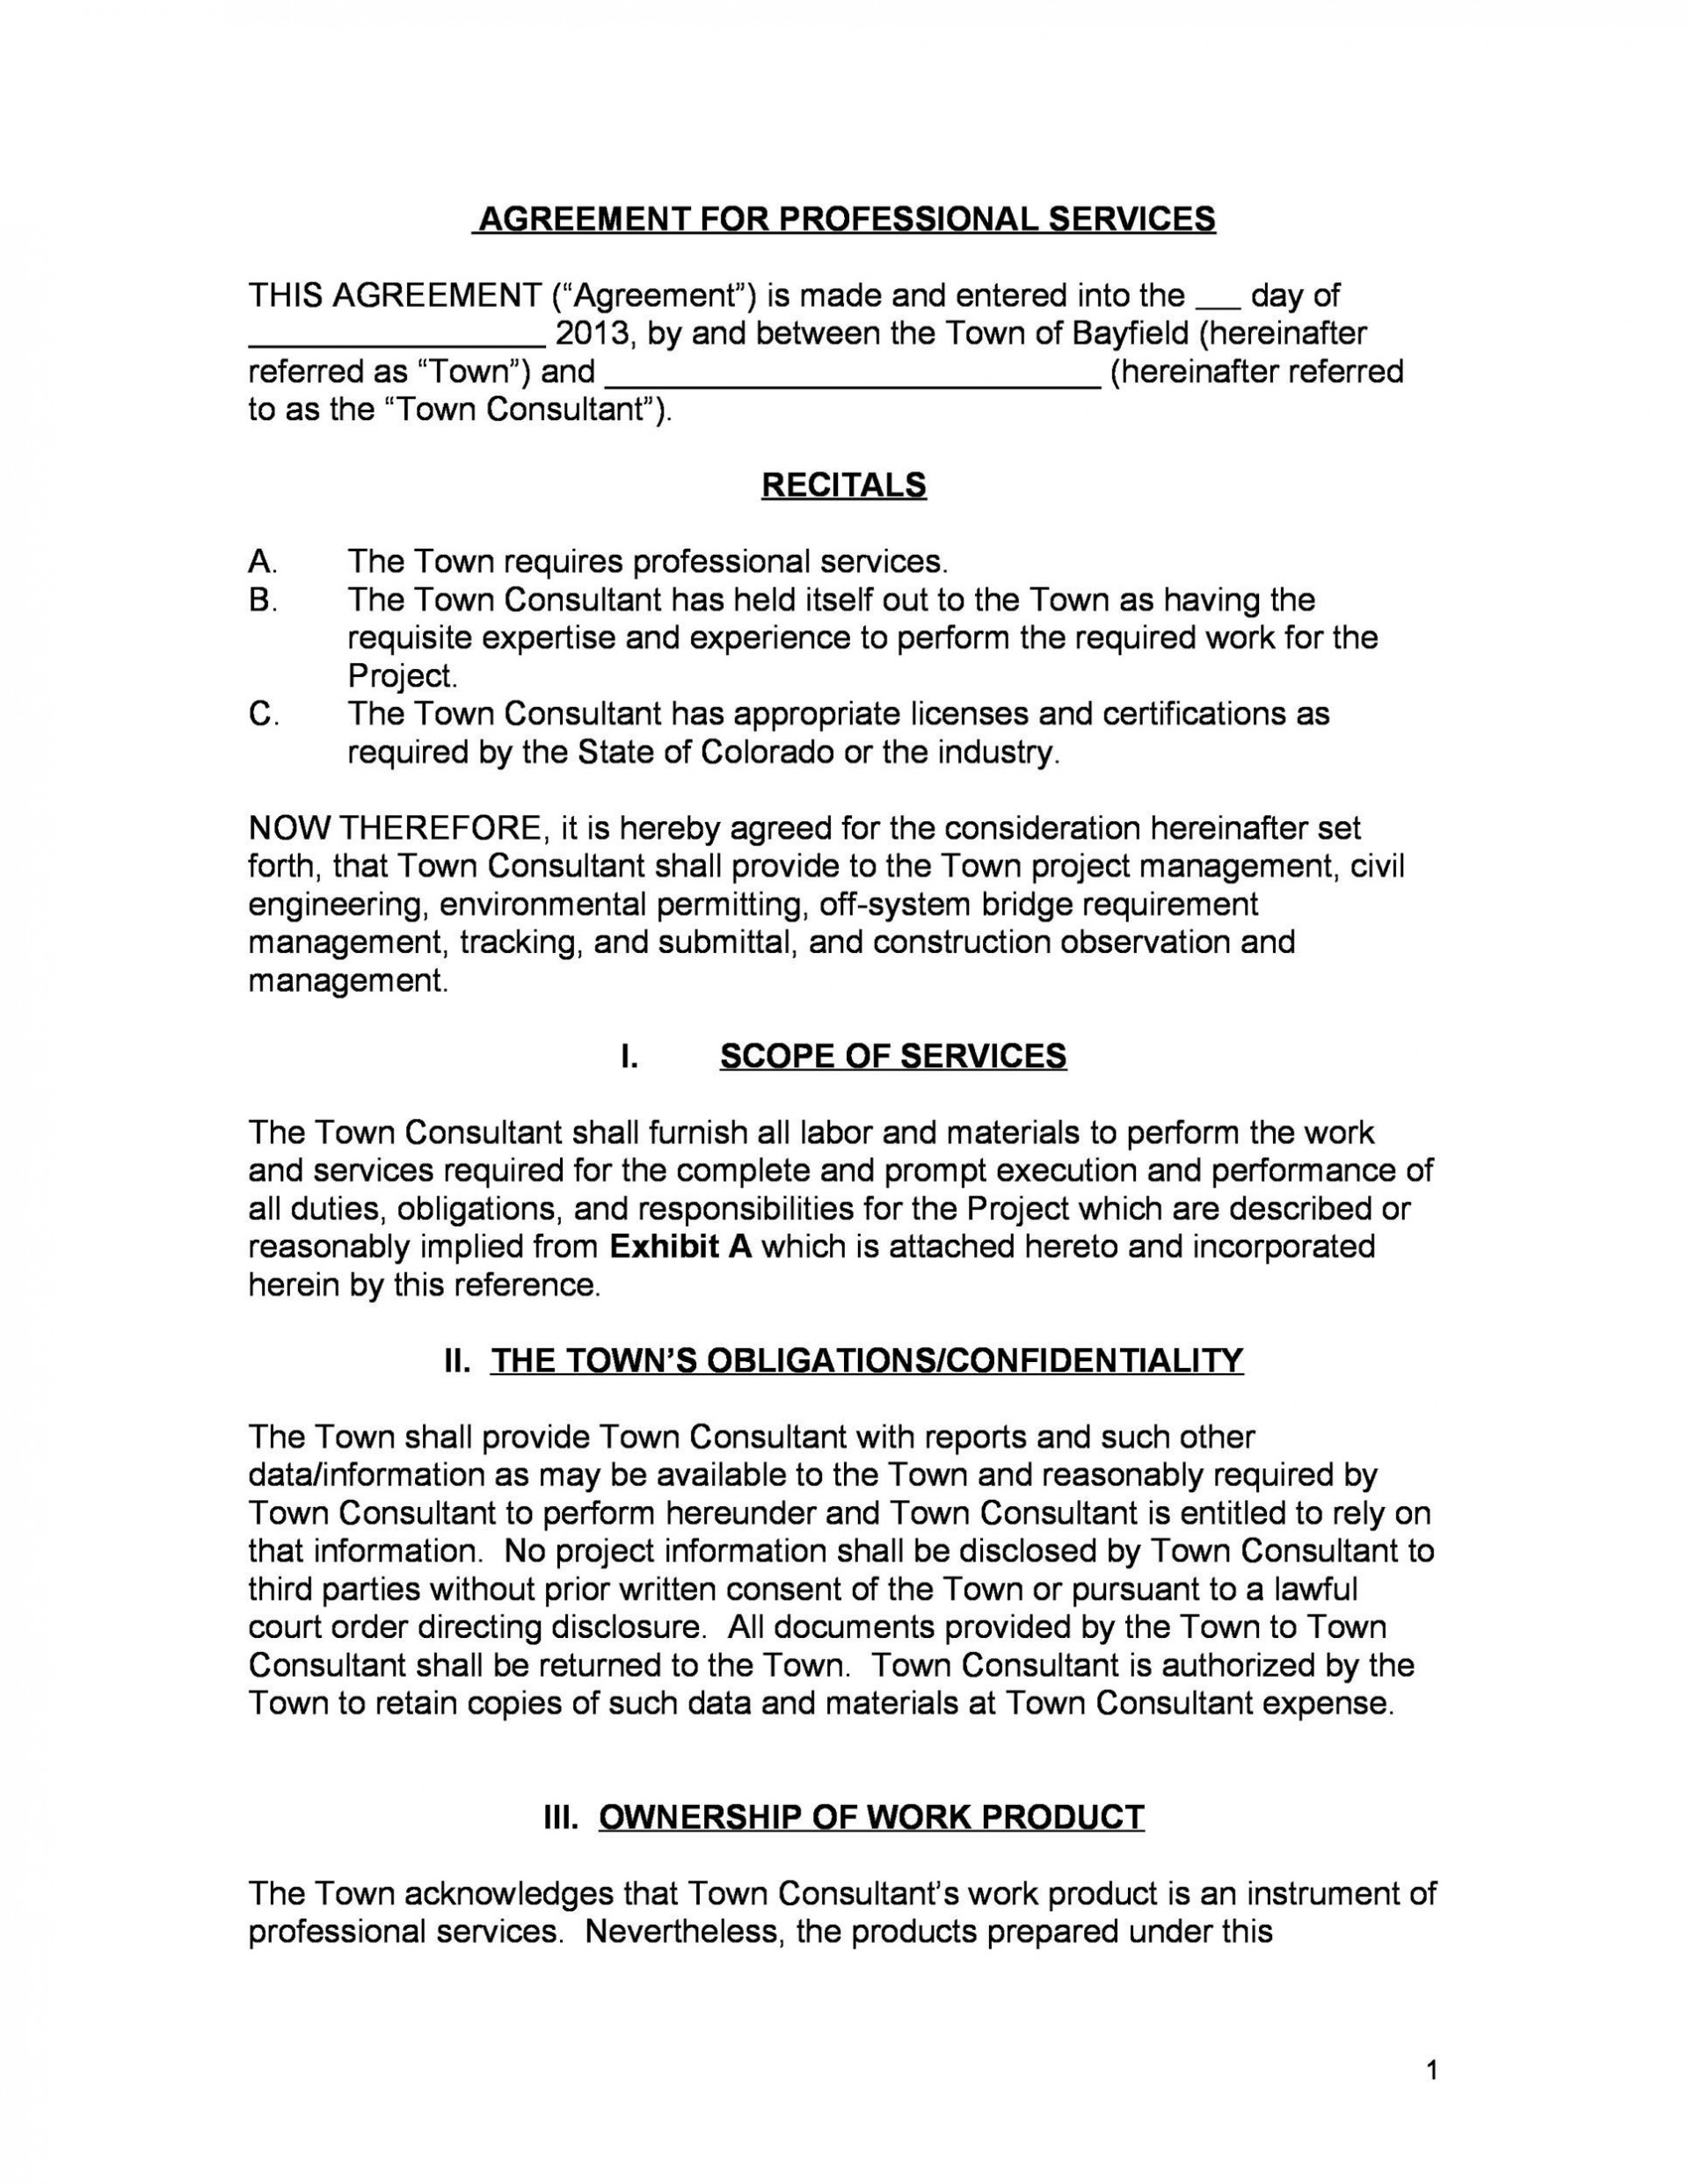 004 Amazing Professional Service Agreement Template High Definition  Uk Free Australia1920